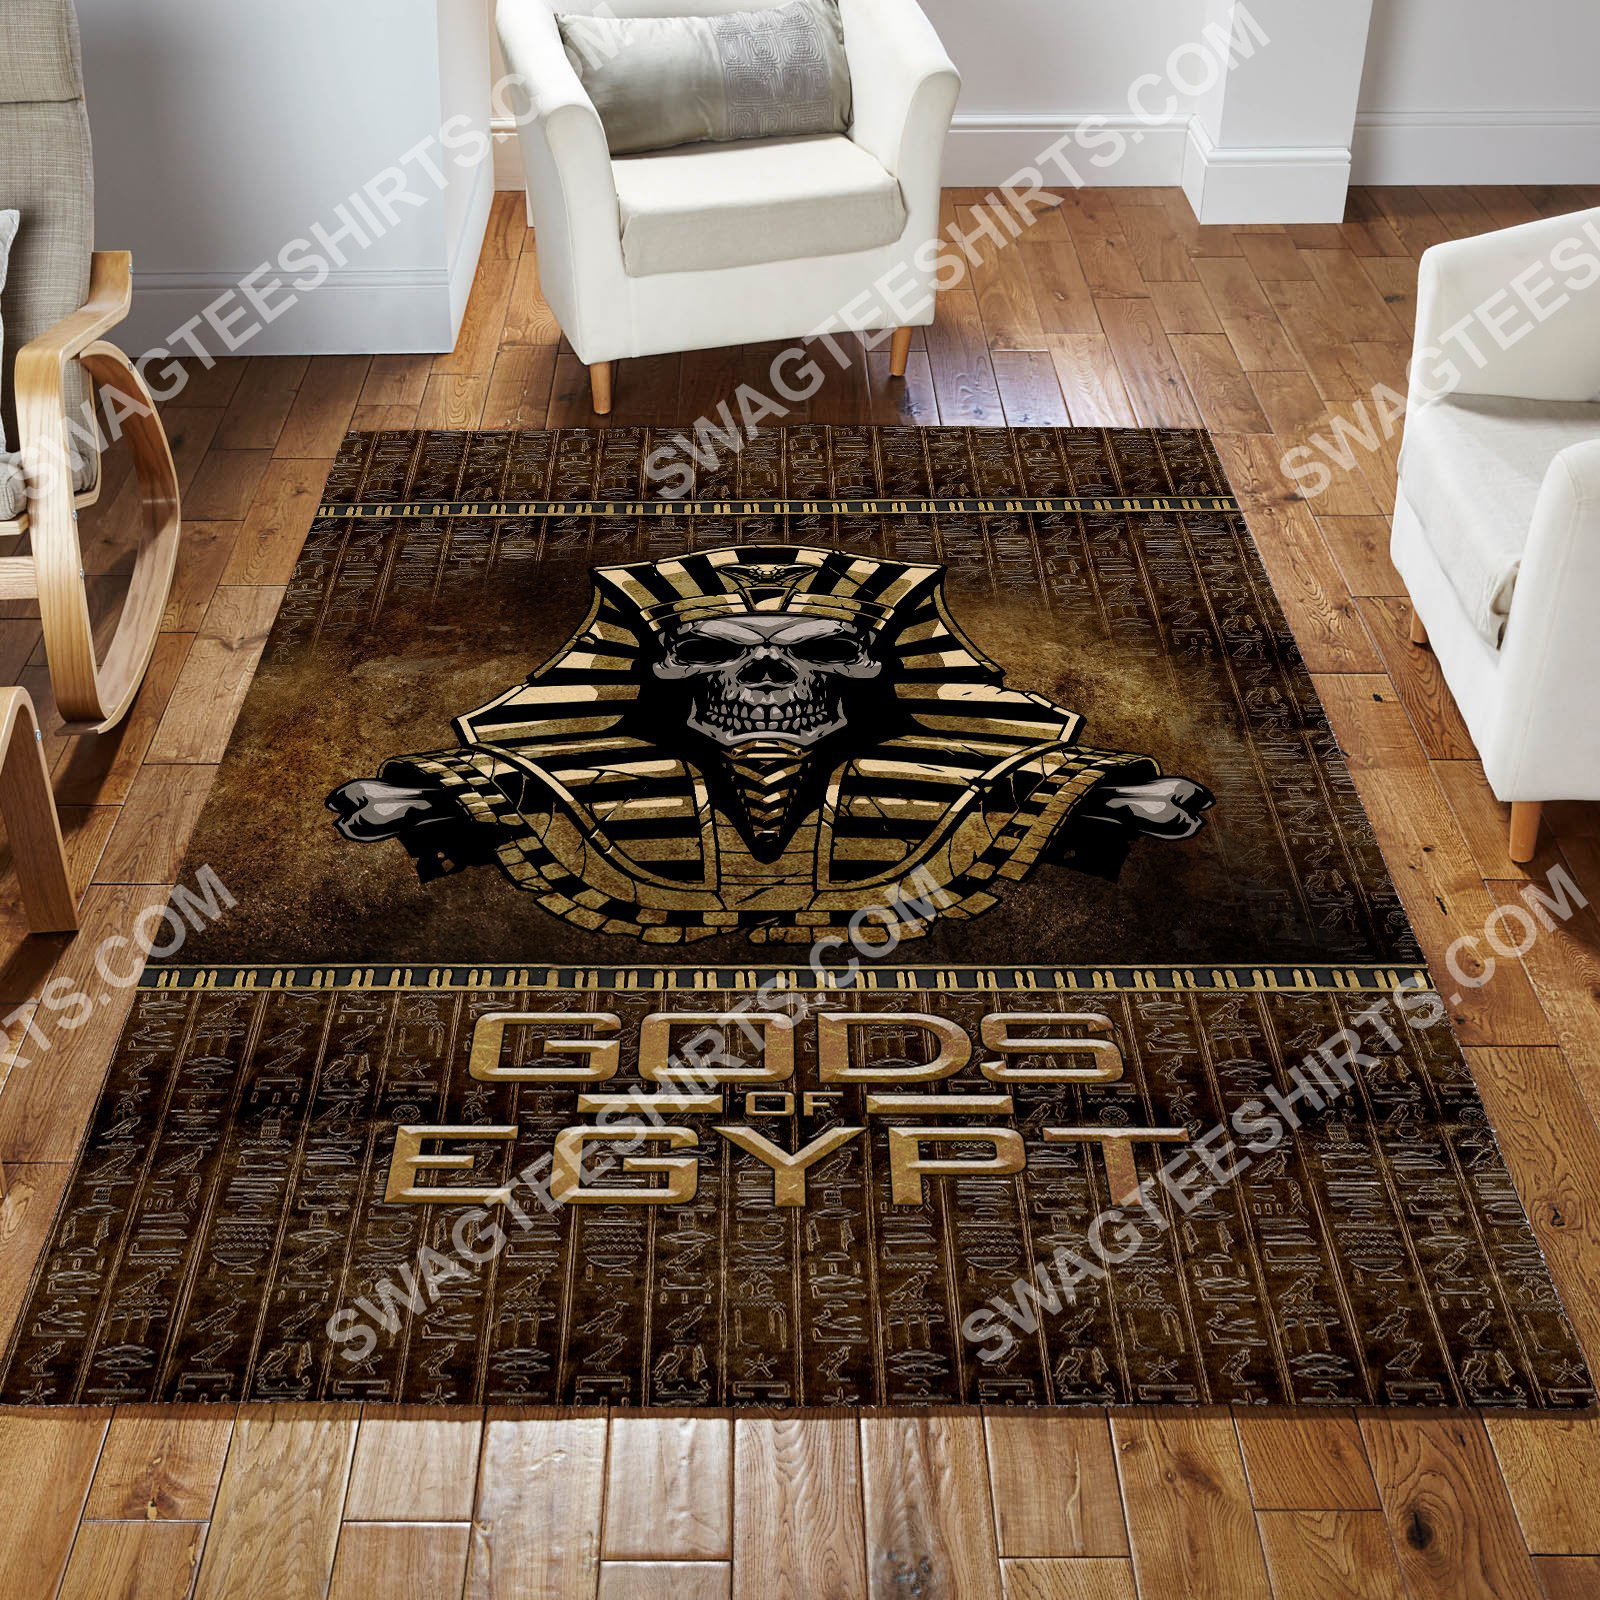 the skull Gods of egypt culture all over printed rug 2(1)